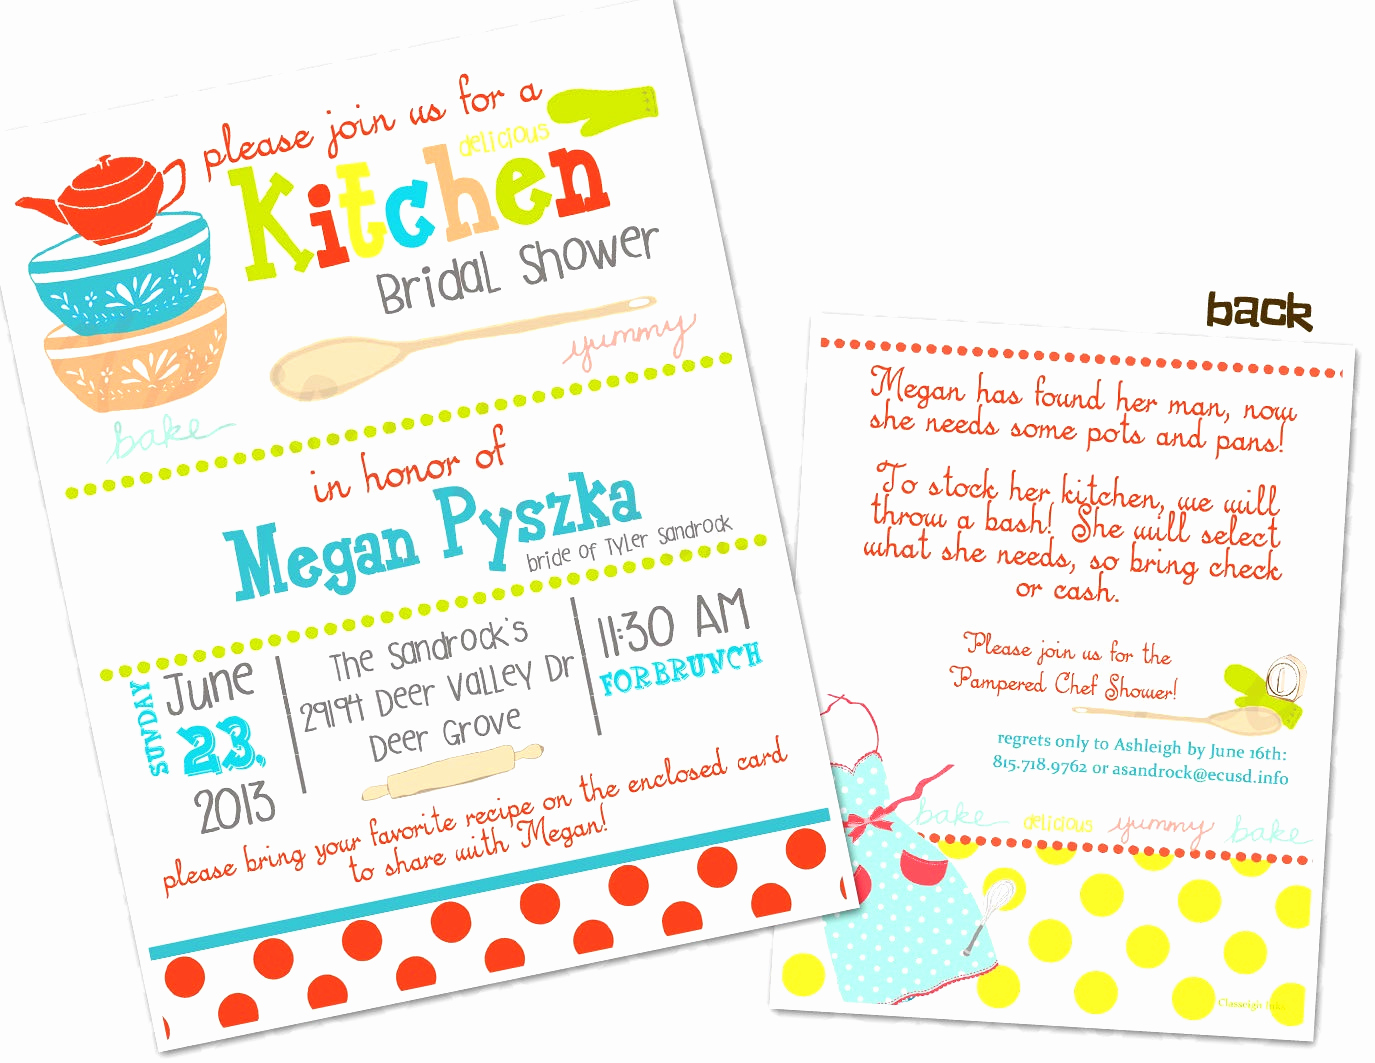 Pampered Chef Party Invitation Lovely Pampered Chef Invitation Templates